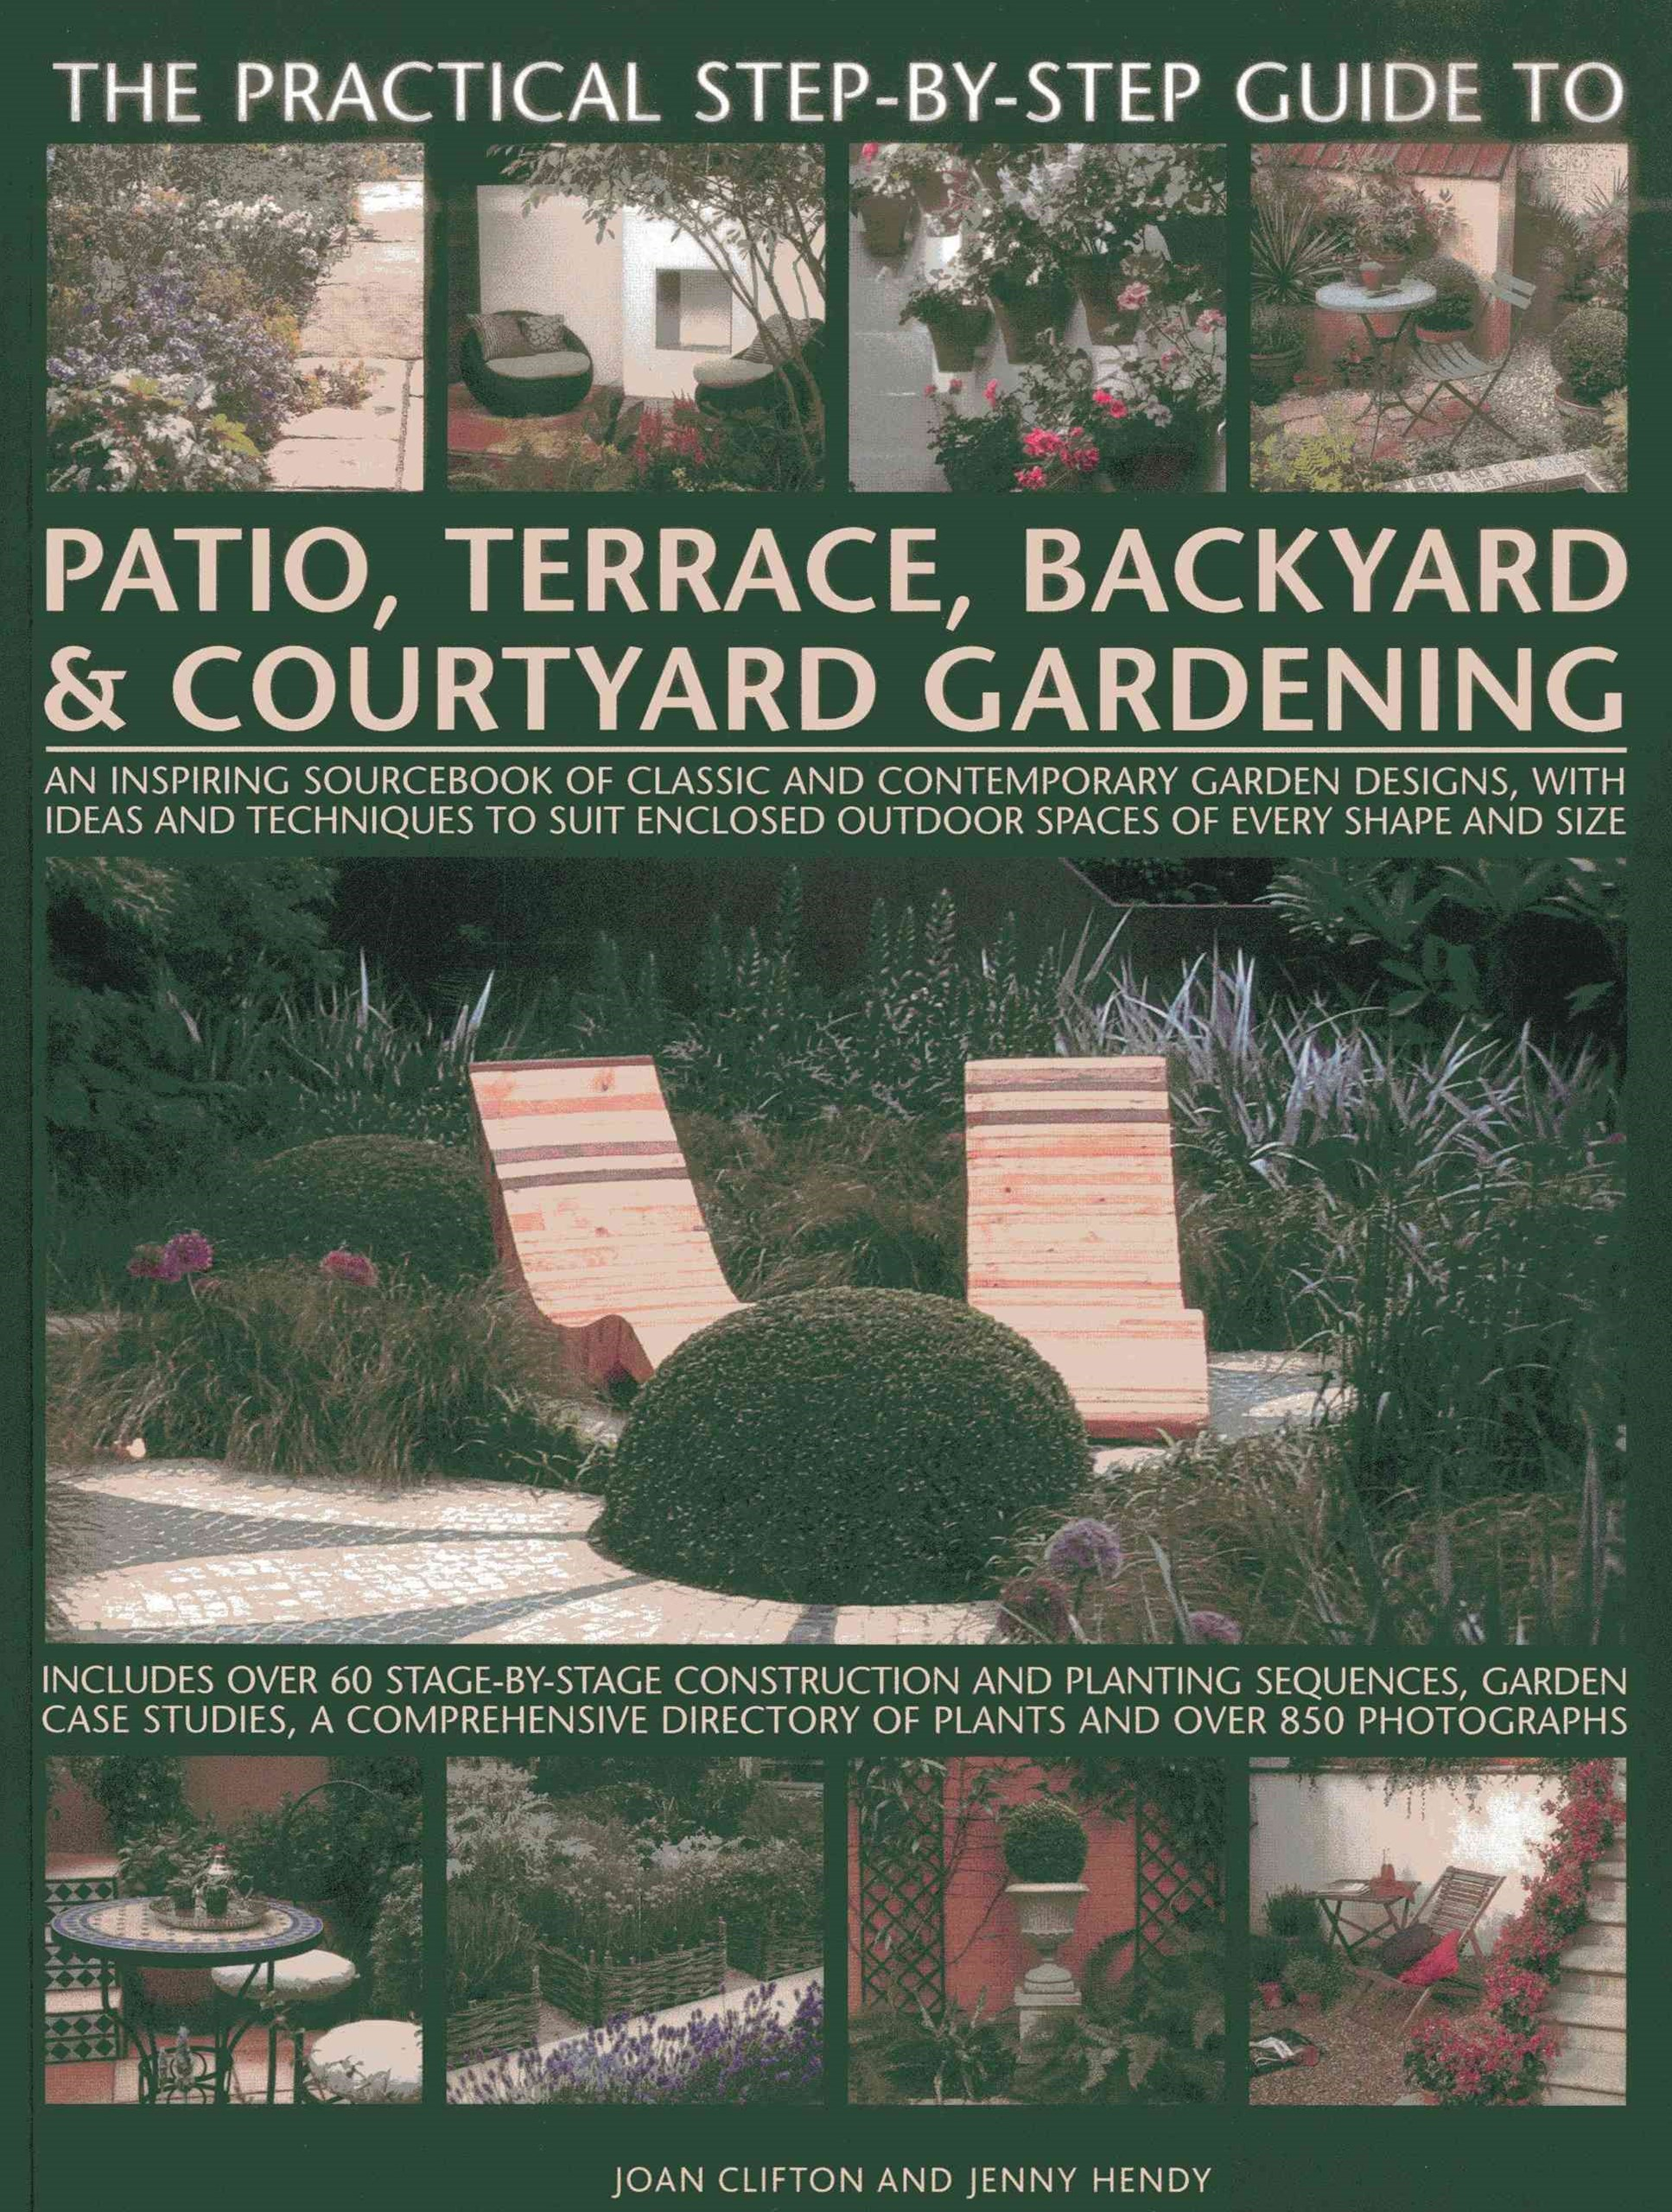 Practical Step-by-Step Guide to Patio, Terrace, Backyard & Courtyard Gardening